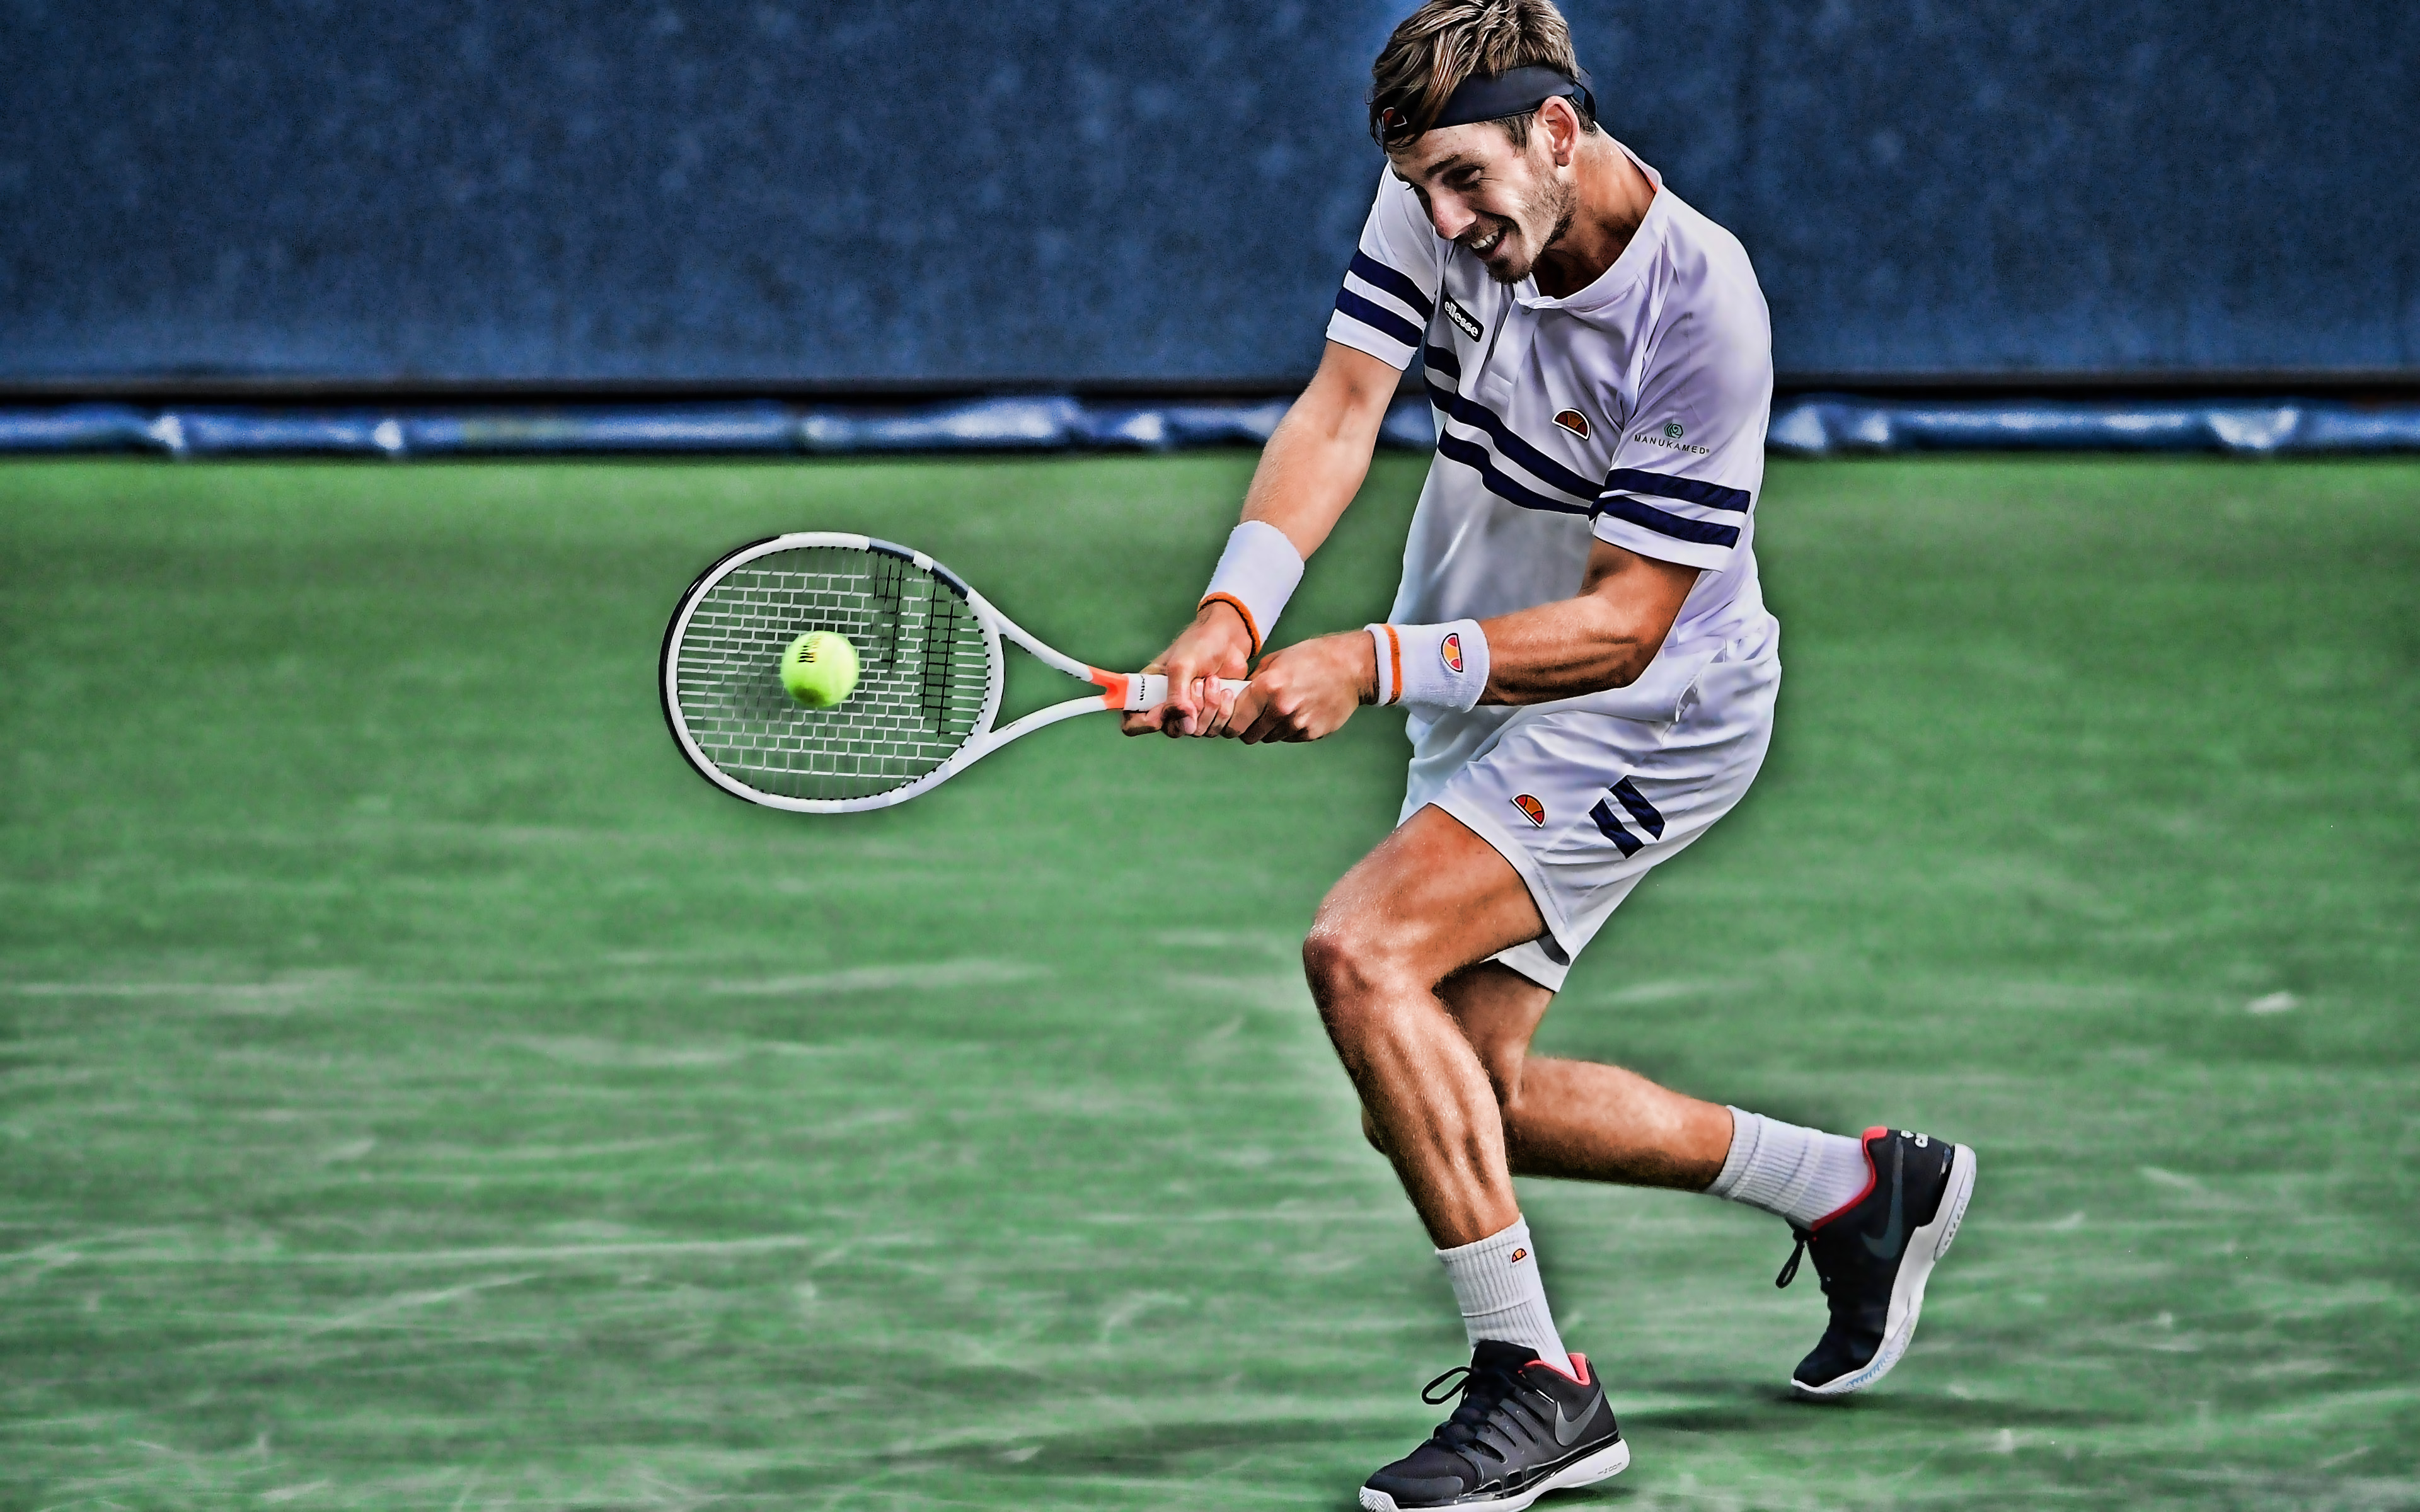 Download Wallpapers Cameron Norrie 4k British Tennis Players Atp Match Athlete Norrie Tennis Hdr Tennis Players For Desktop With Resolution 3840x2400 High Quality Hd Pictures Wallpapers